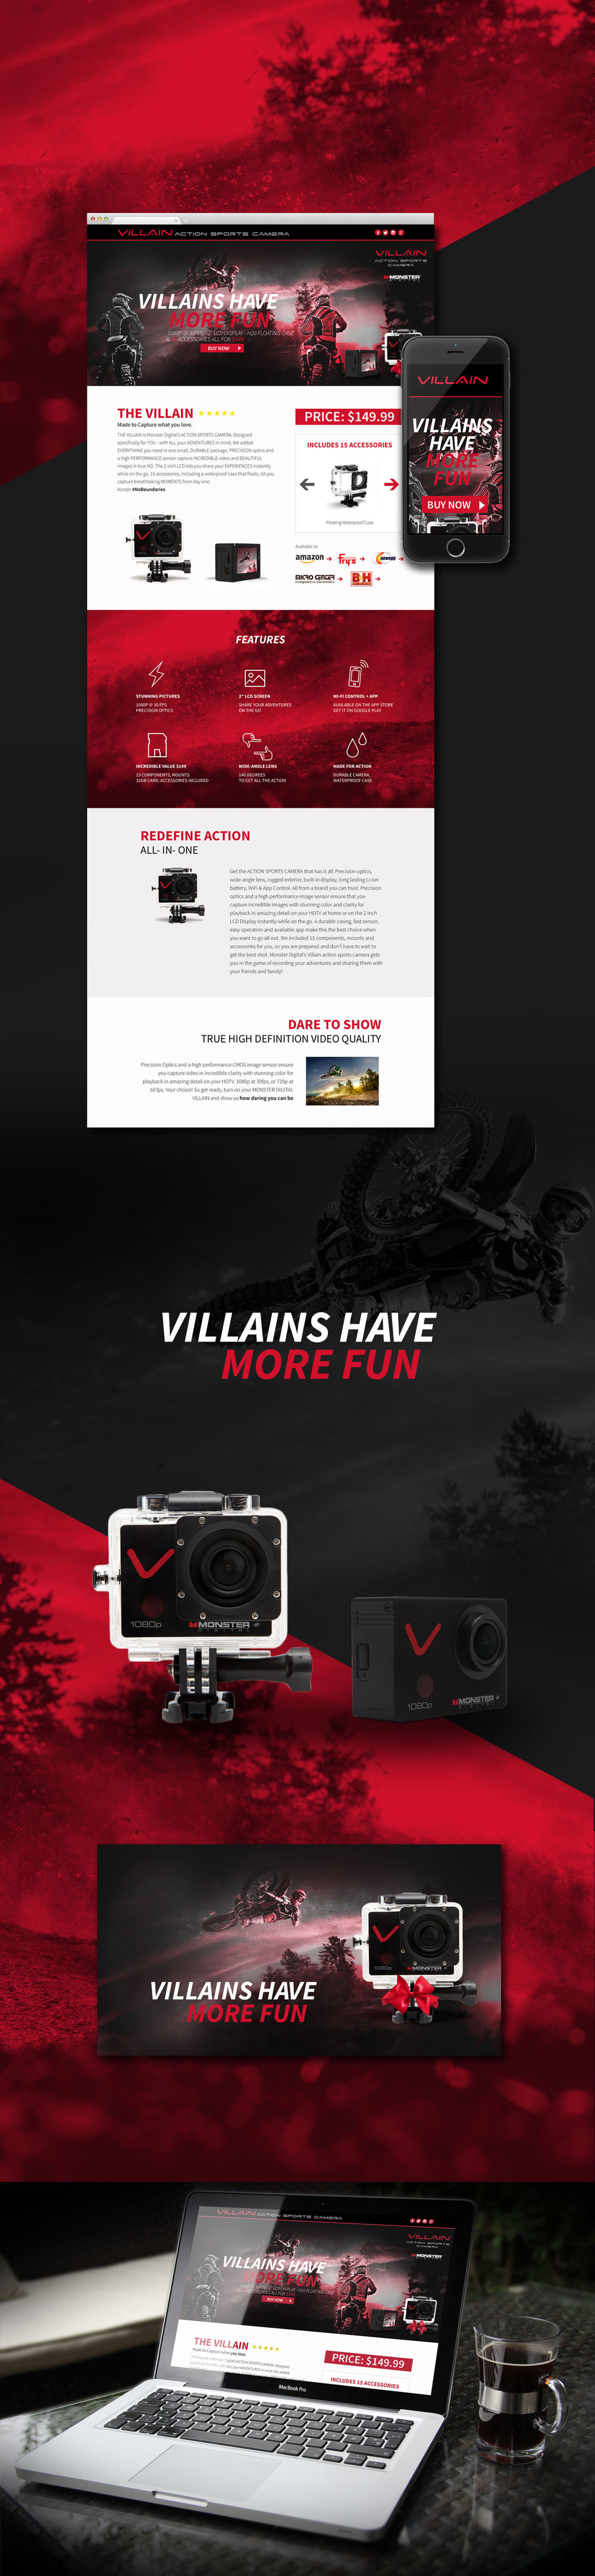 Projects_The-Villain-2.jpg